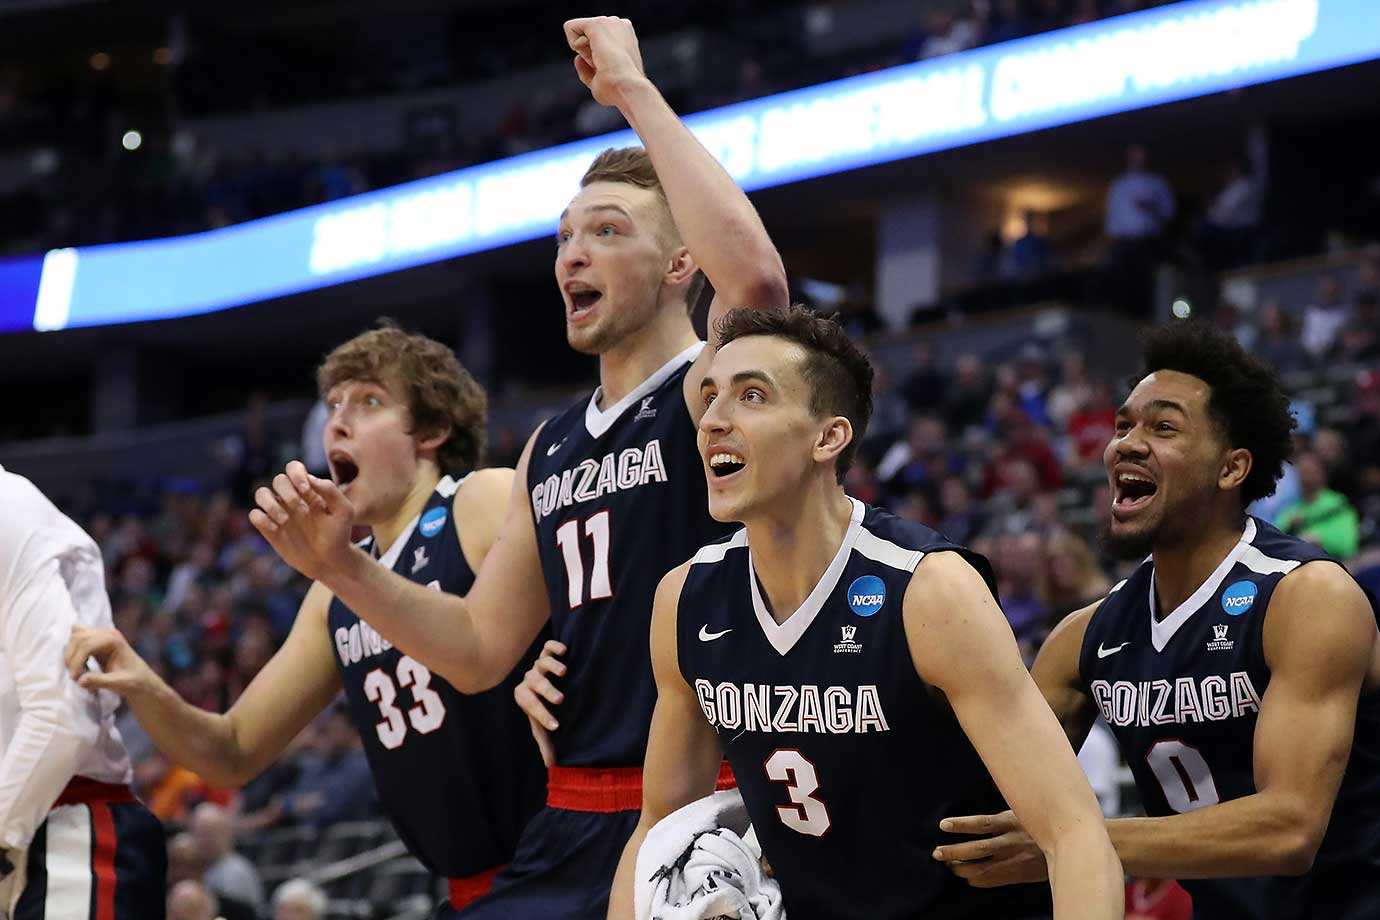 Kyle Wiltjer (33), Domantas Sabonis, Kyle Dranginis and Silas Melson of the Gonzaga Bulldogs celebrate an 82-59 win over No. 3 seed Utah.